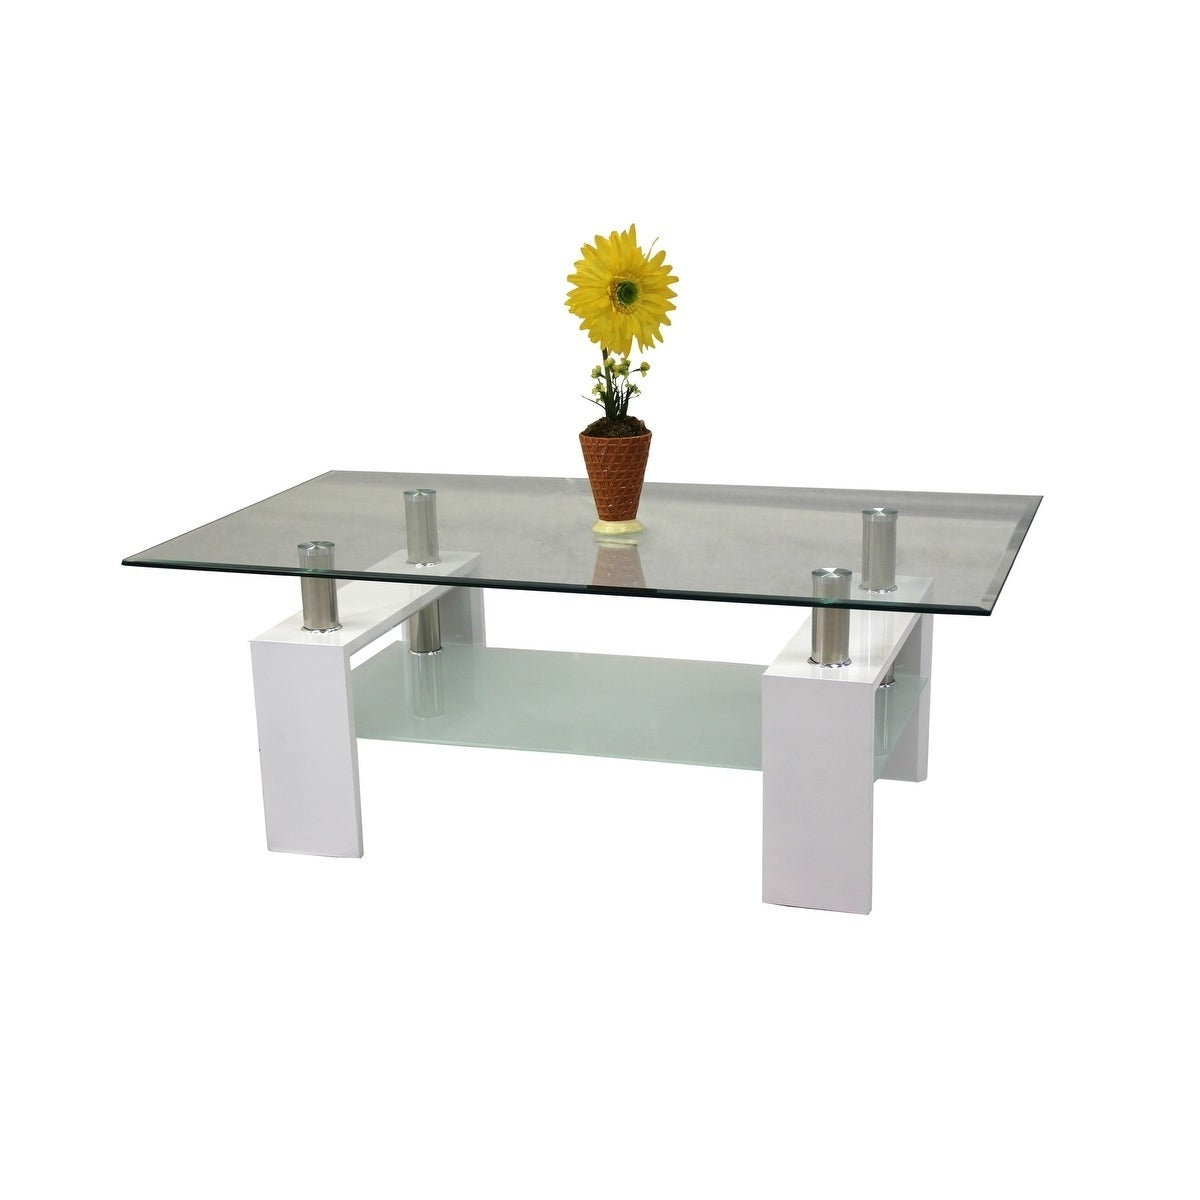 Best Quality Furniture Rectangular Glass Top Coffee Table With Glass Shelf In Latest Finbar Modern Rectangle Glass Coffee Tables (View 2 of 20)